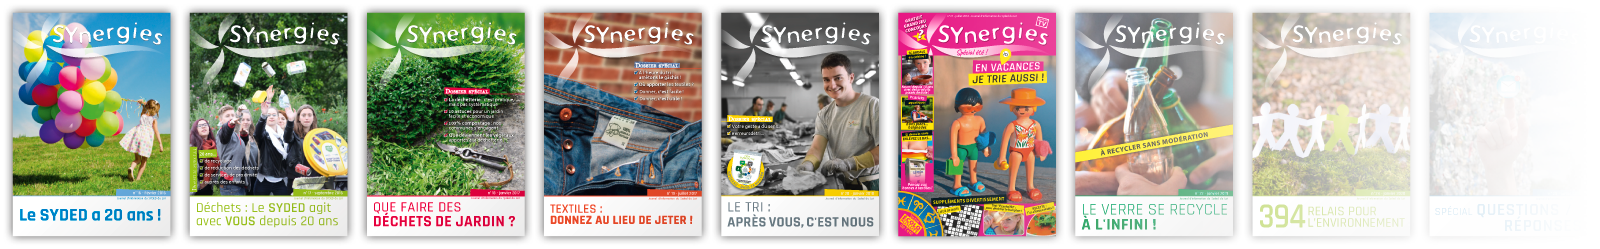 Couvertures des SYnergies